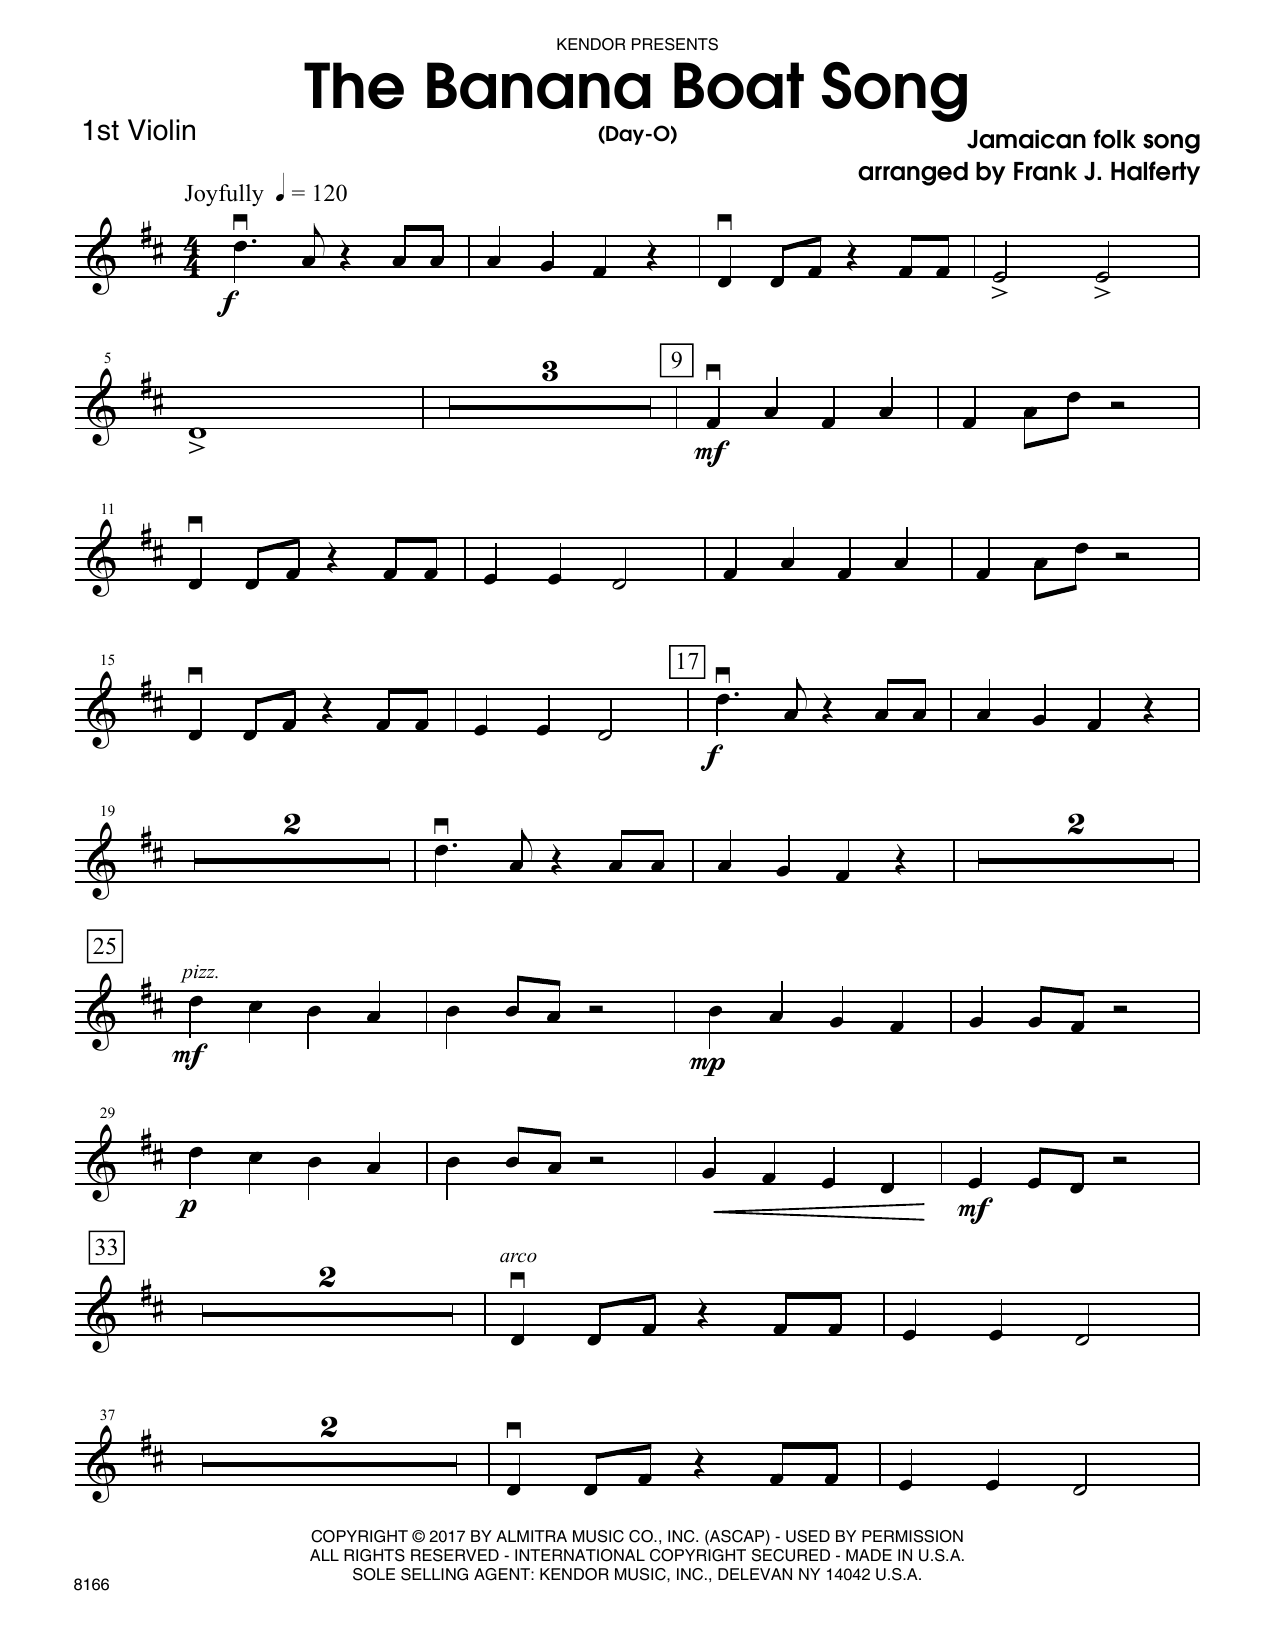 Banana boat song the day o 1st violin sheet music at banana boat song the day o 1st violin hexwebz Image collections